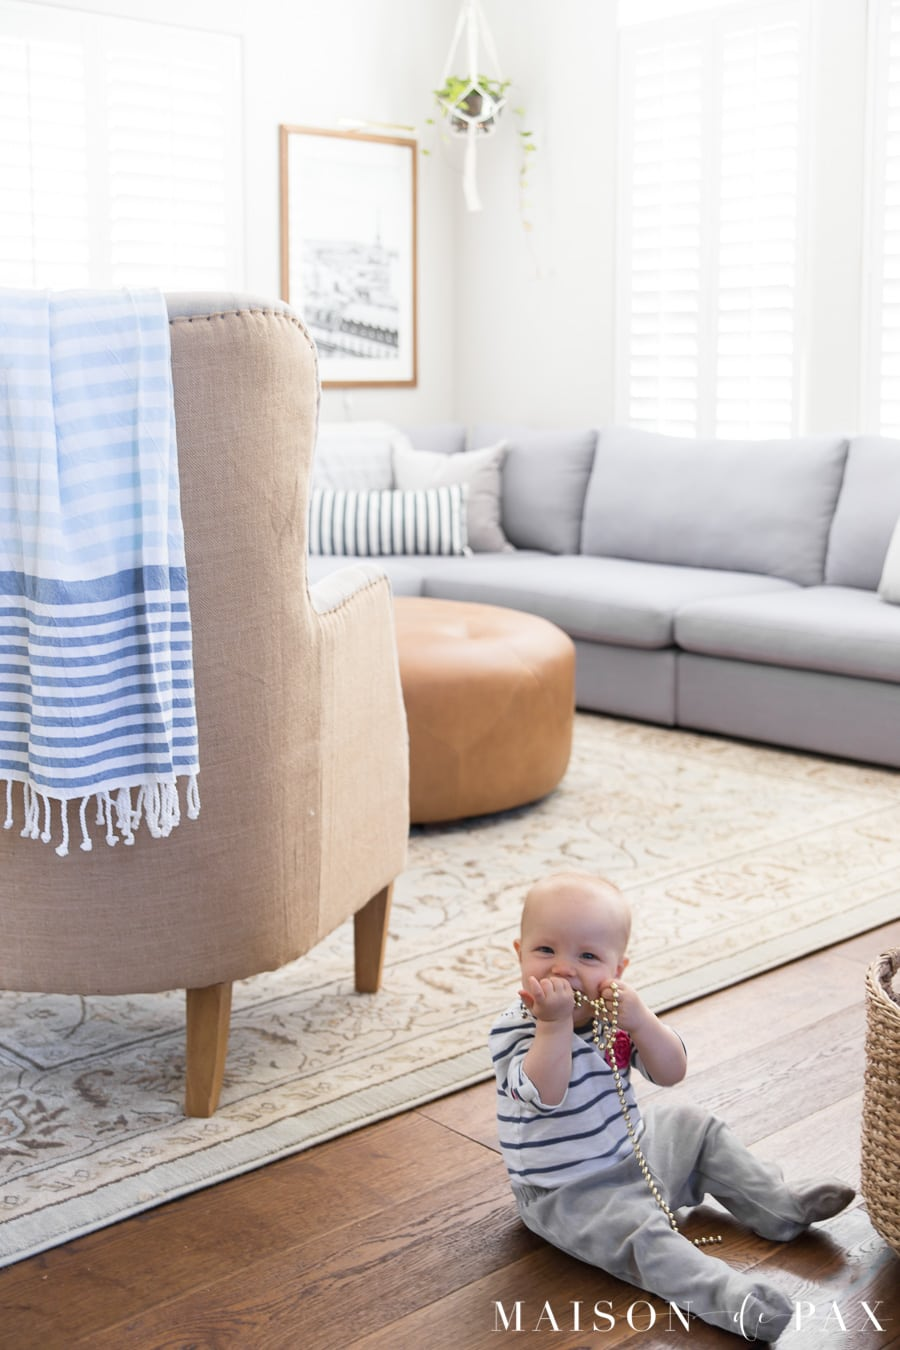 Get 5 tips for creating a light, bright family room that's kid friendly! #sectionalsofa #neutraldecor #livingroomdecor #livingroomdesign